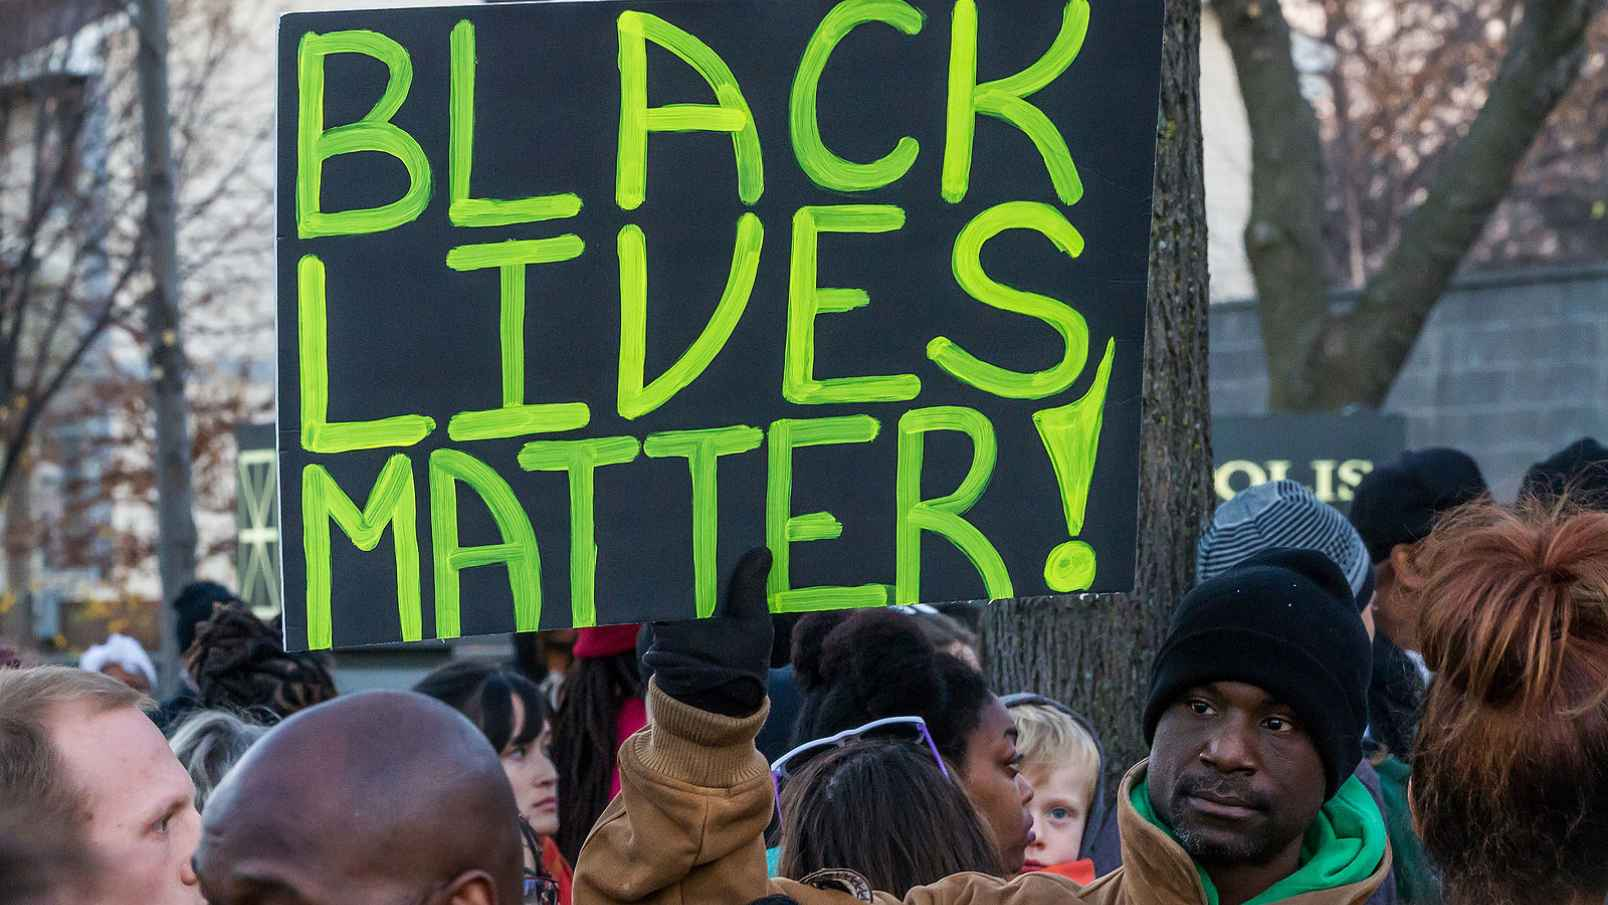 Black Lives Matter at School - Frontpagemag